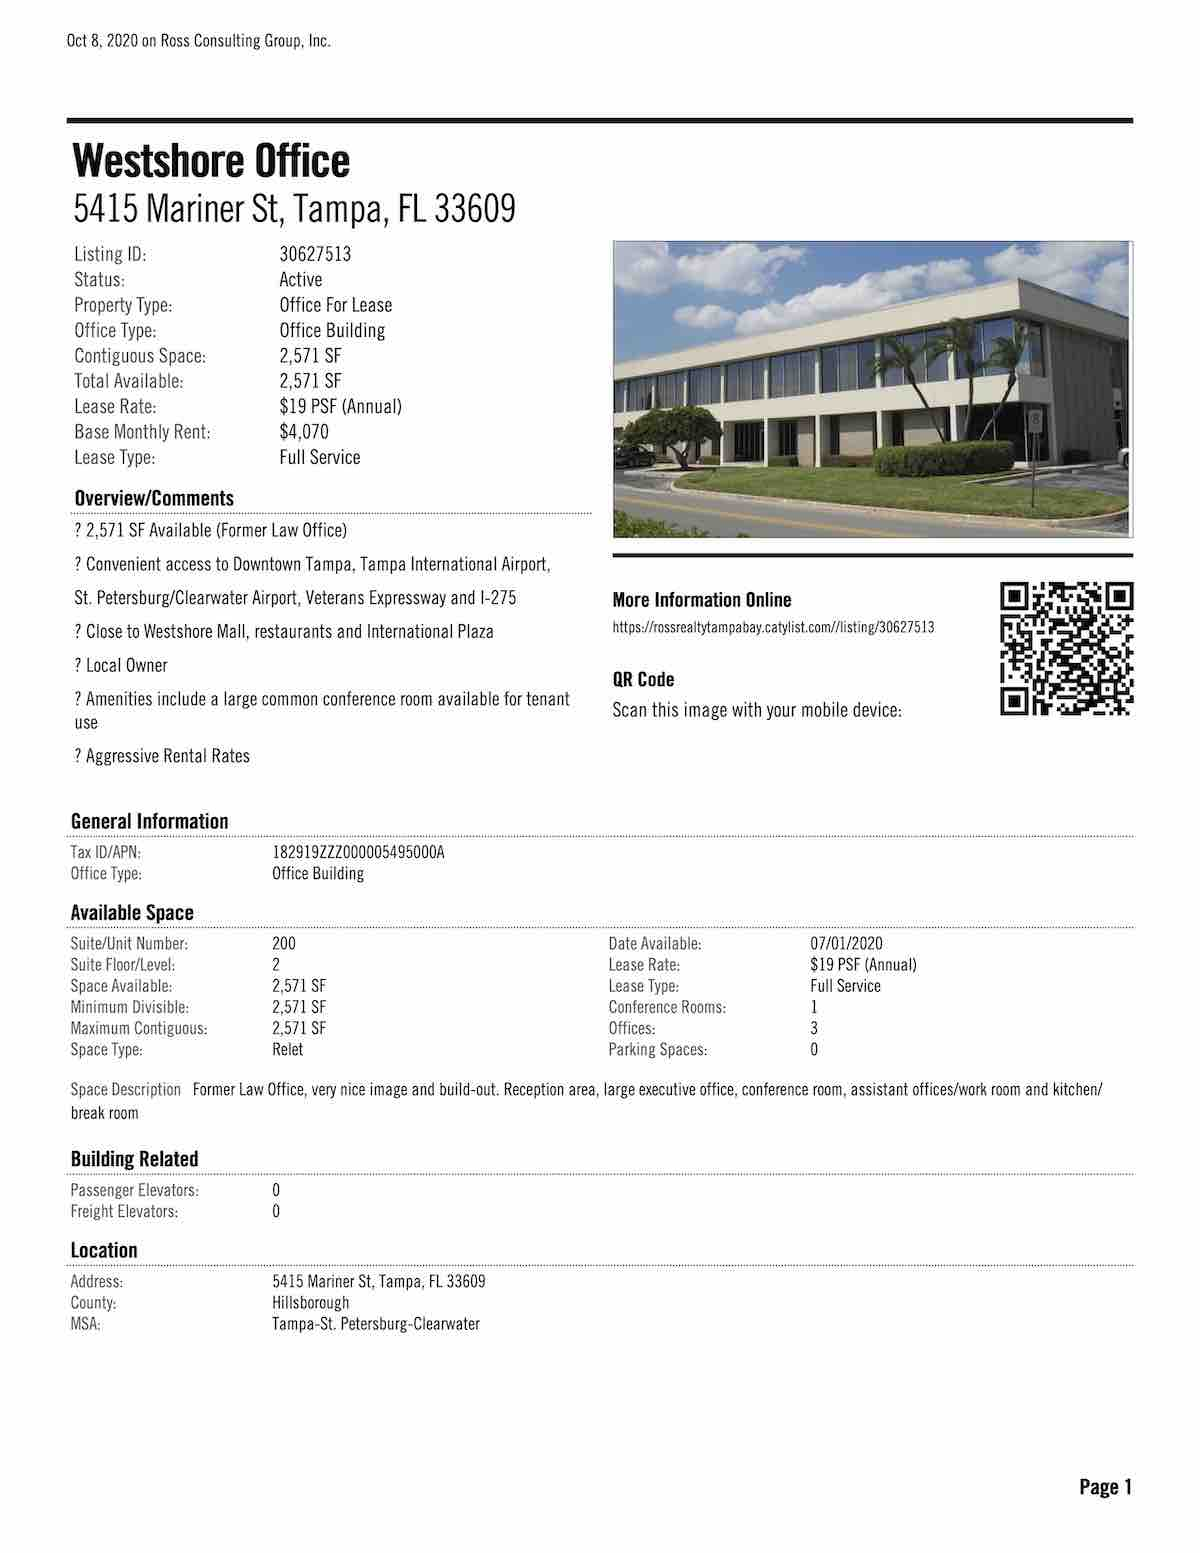 FOR LEASE - Westshore Office - 5415 Mariner St, Tampa, FL 33609 P1